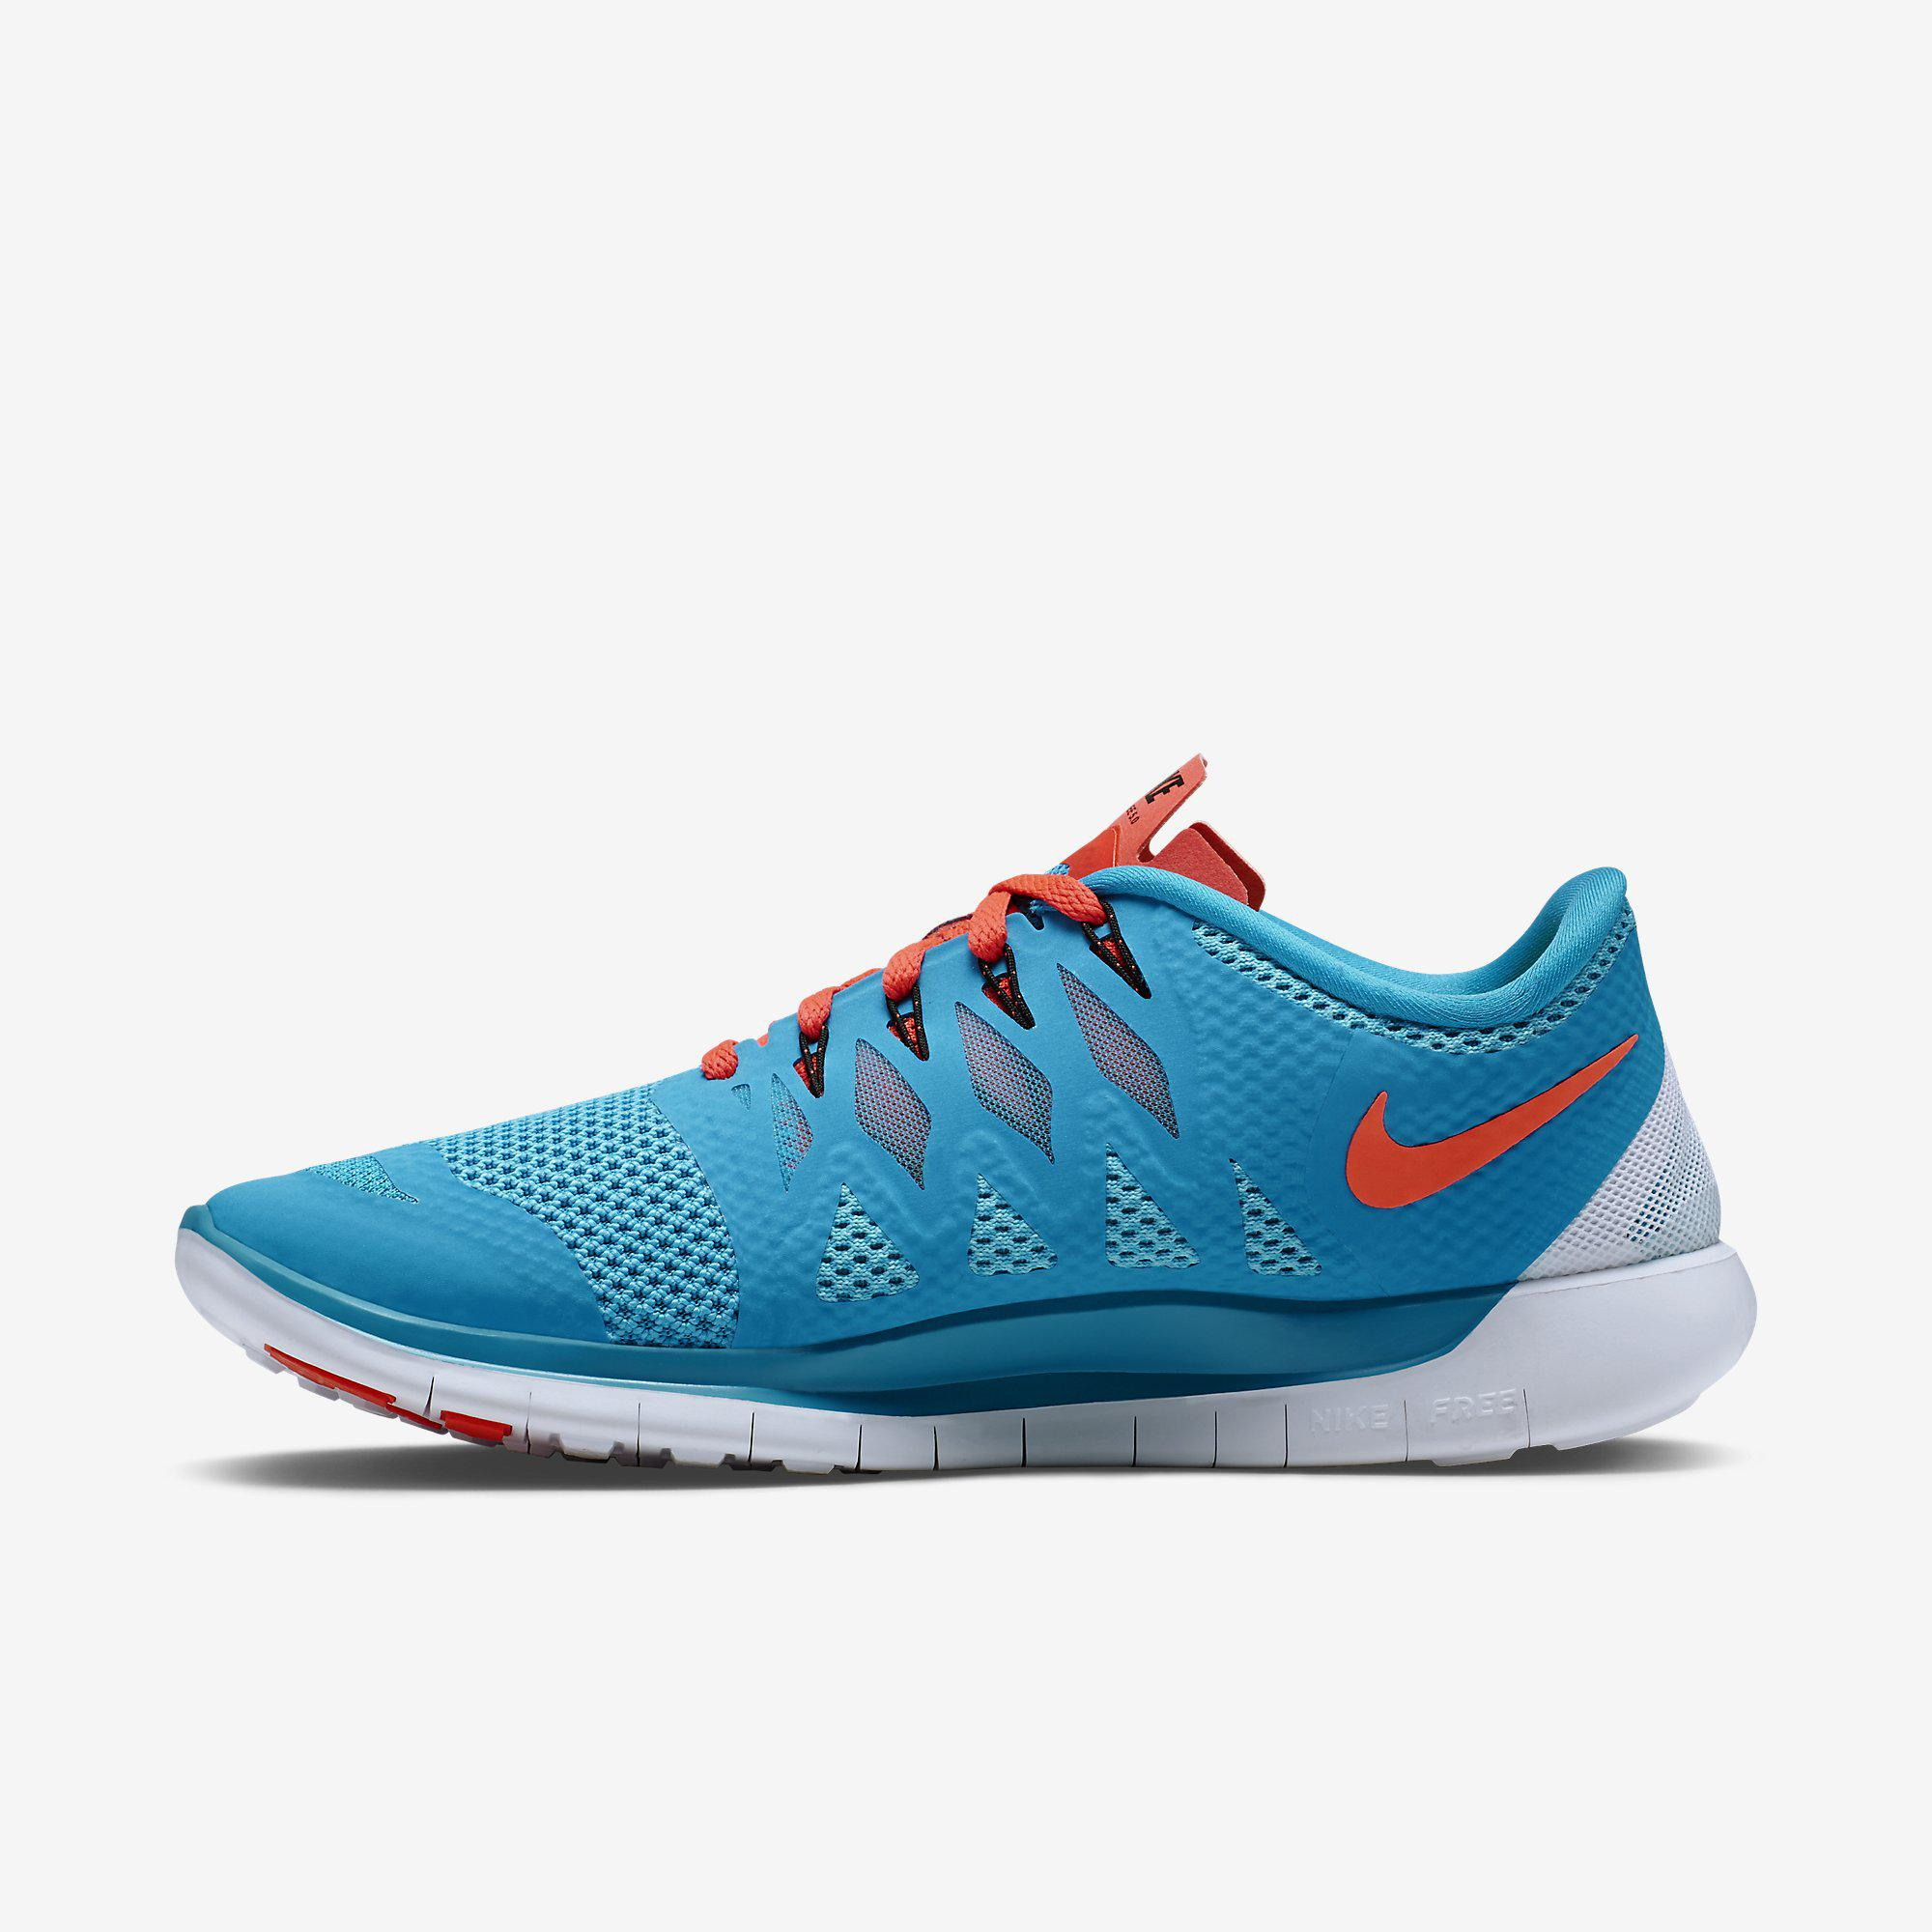 Bright Blue Nike Running Shoes